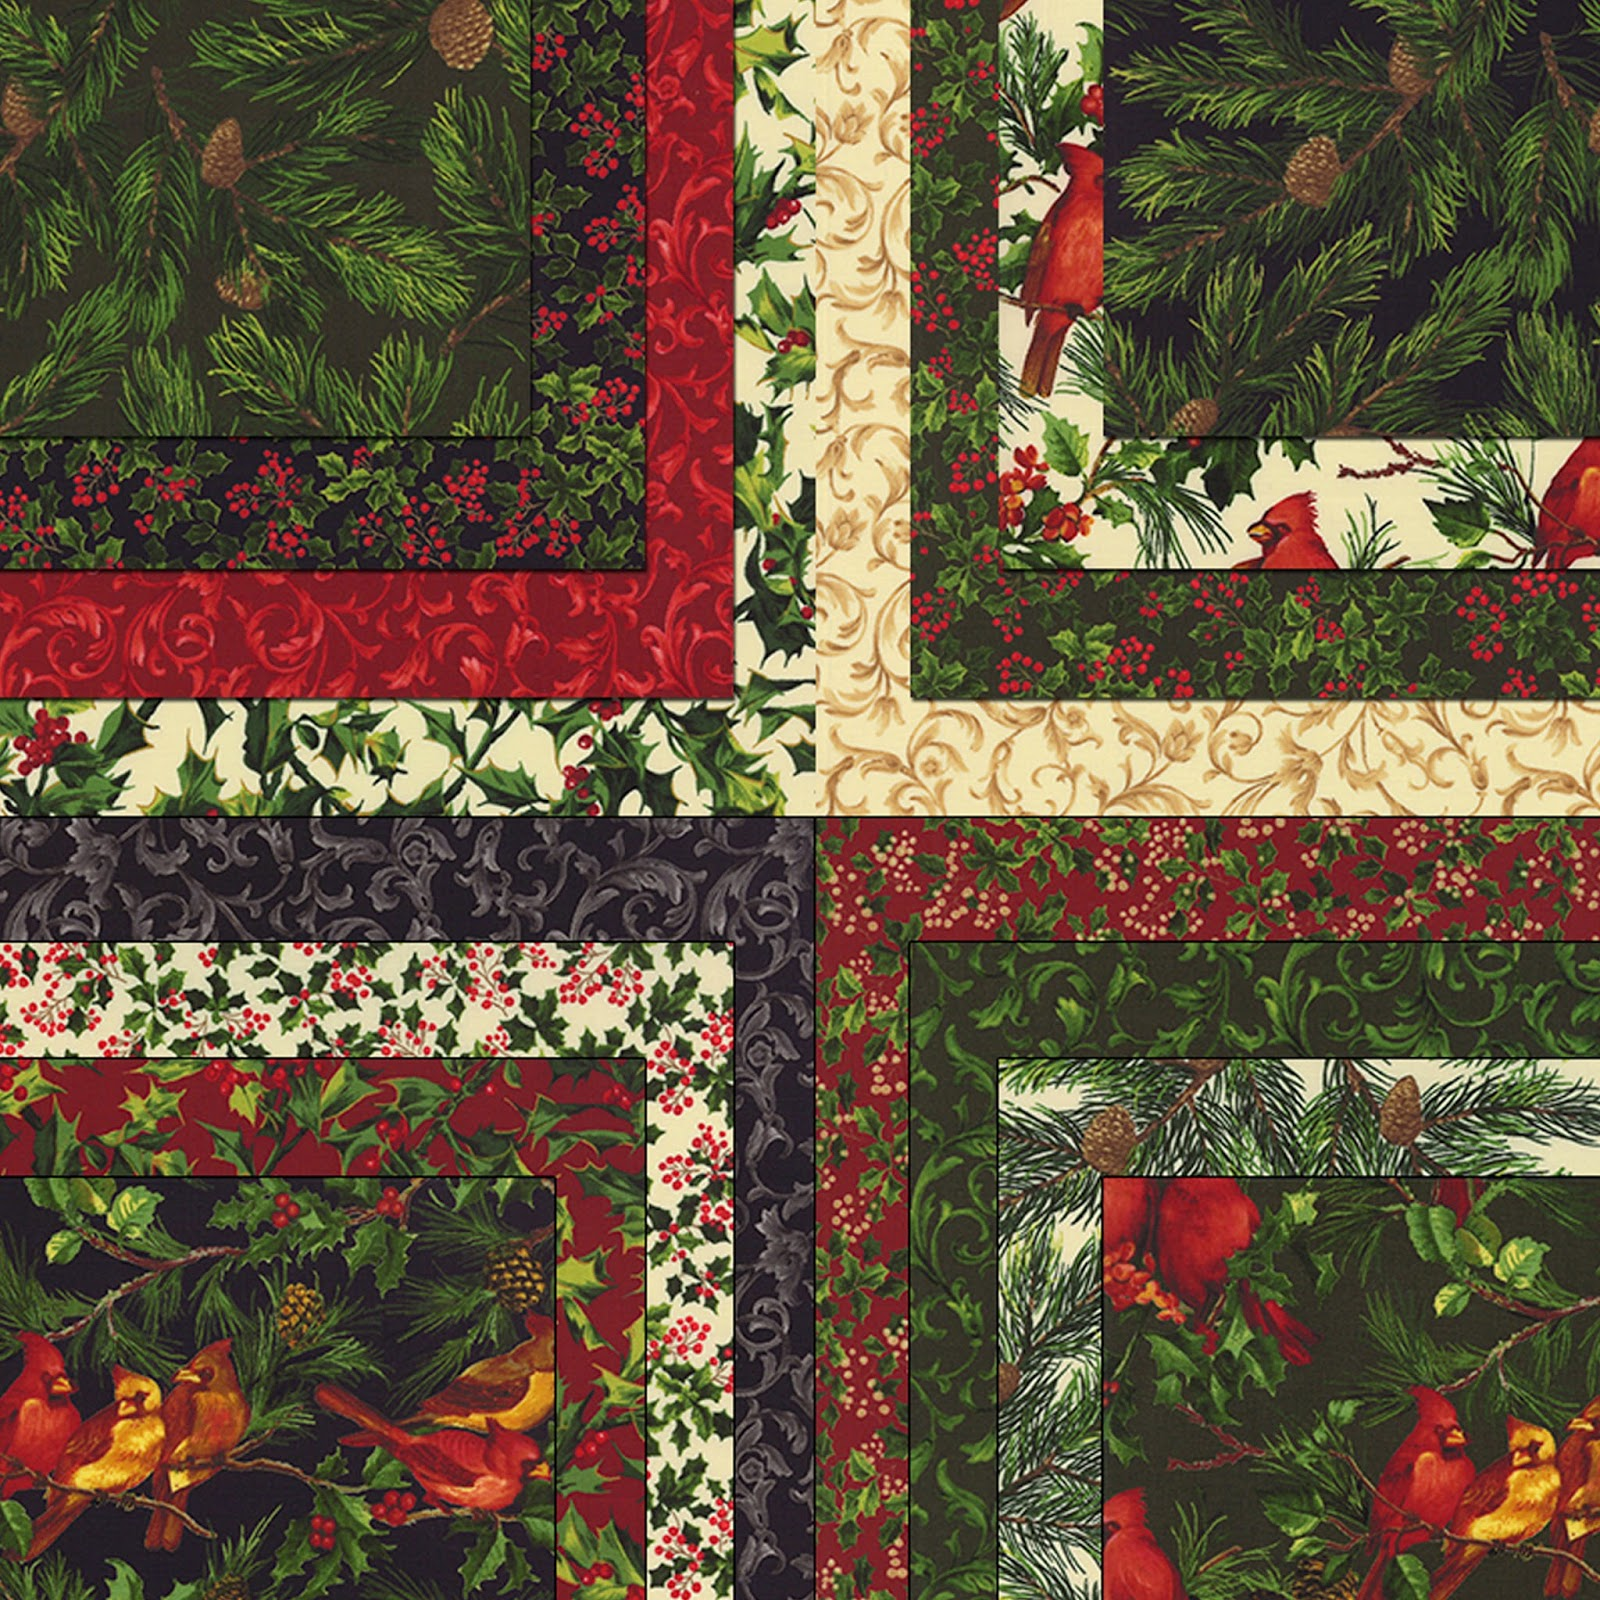 Moda REJOICE Christmas Quilt Fabric by Sentimental Studios for Moda Fabrics